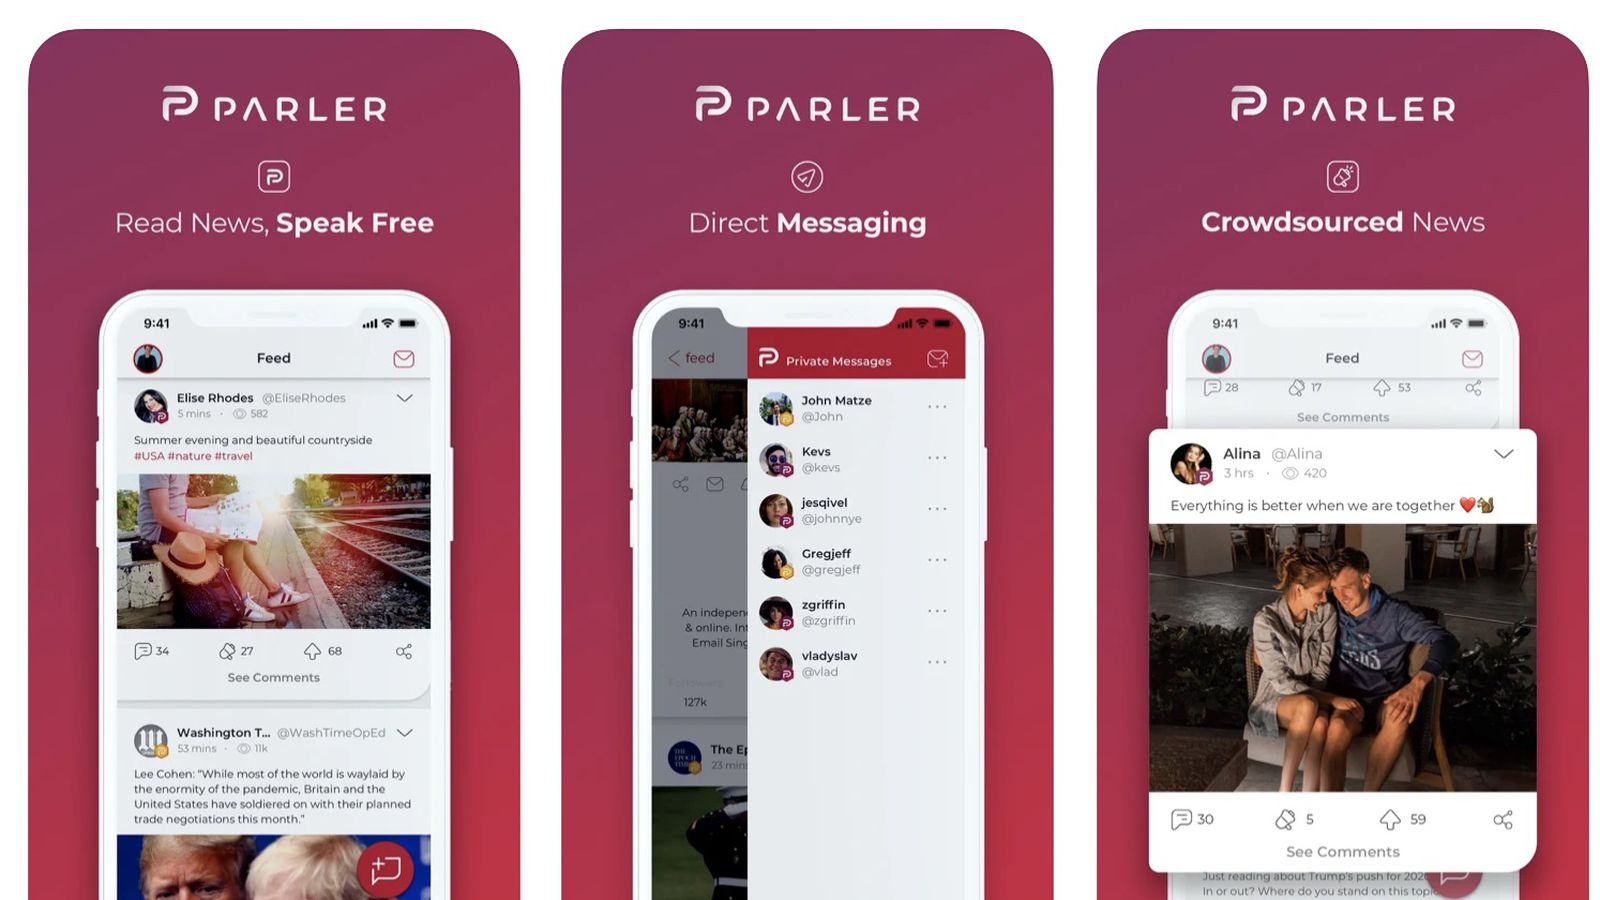 Apple Removes Parler From App Store Due to 'Inadequate' Measures to Address  Dangerous Content - MacRumors